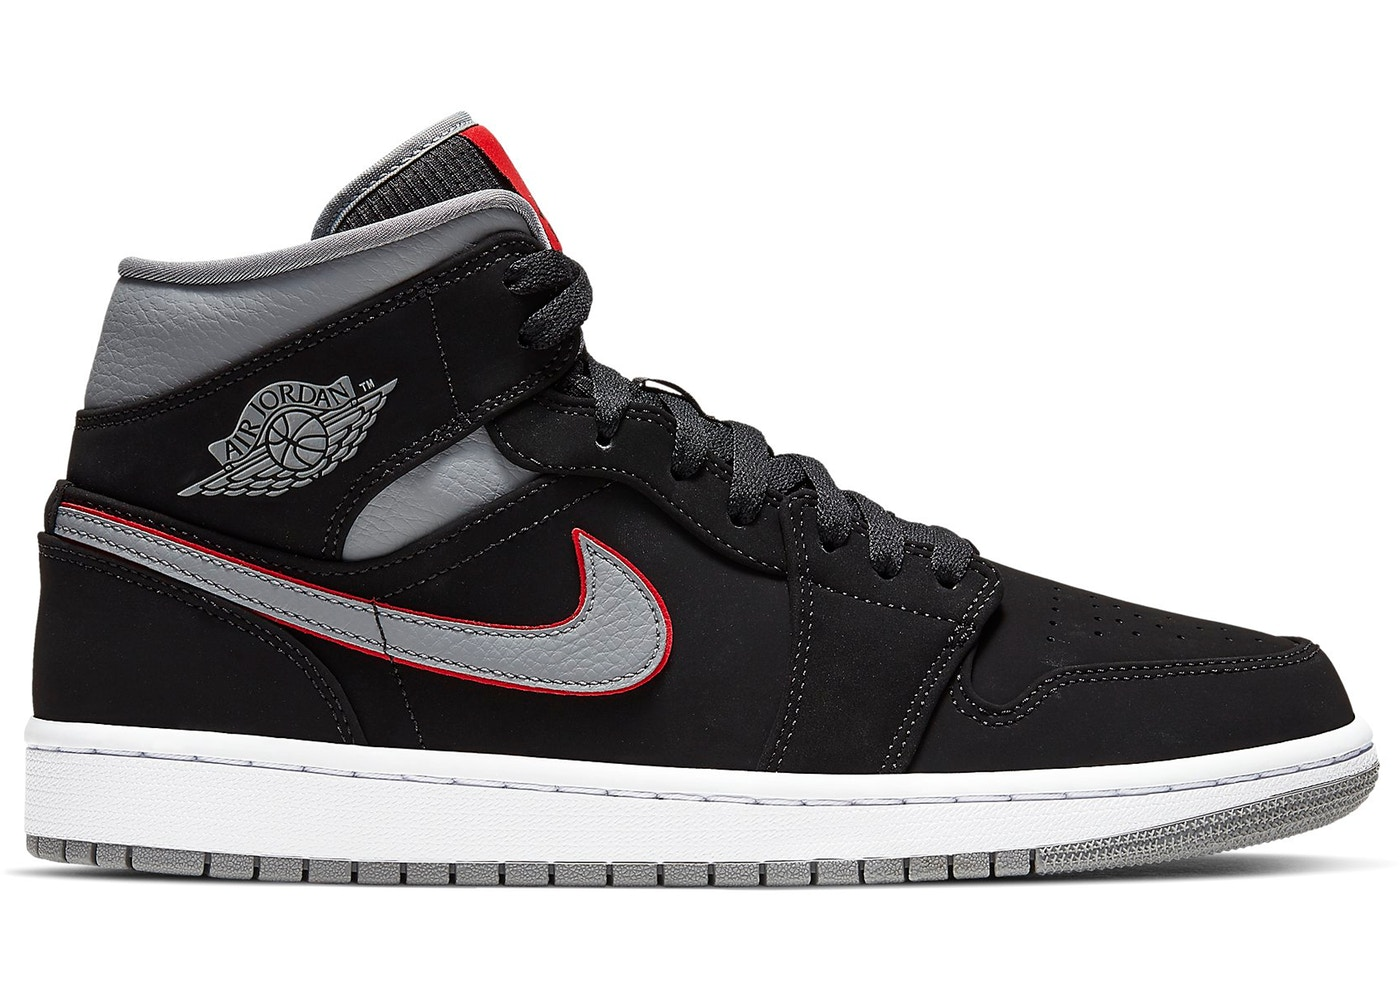 552decc5fb21a8 Sell. or Ask. Size 9. View All Bids. Jordan 1 Mid Black Particle Grey Gym  Red